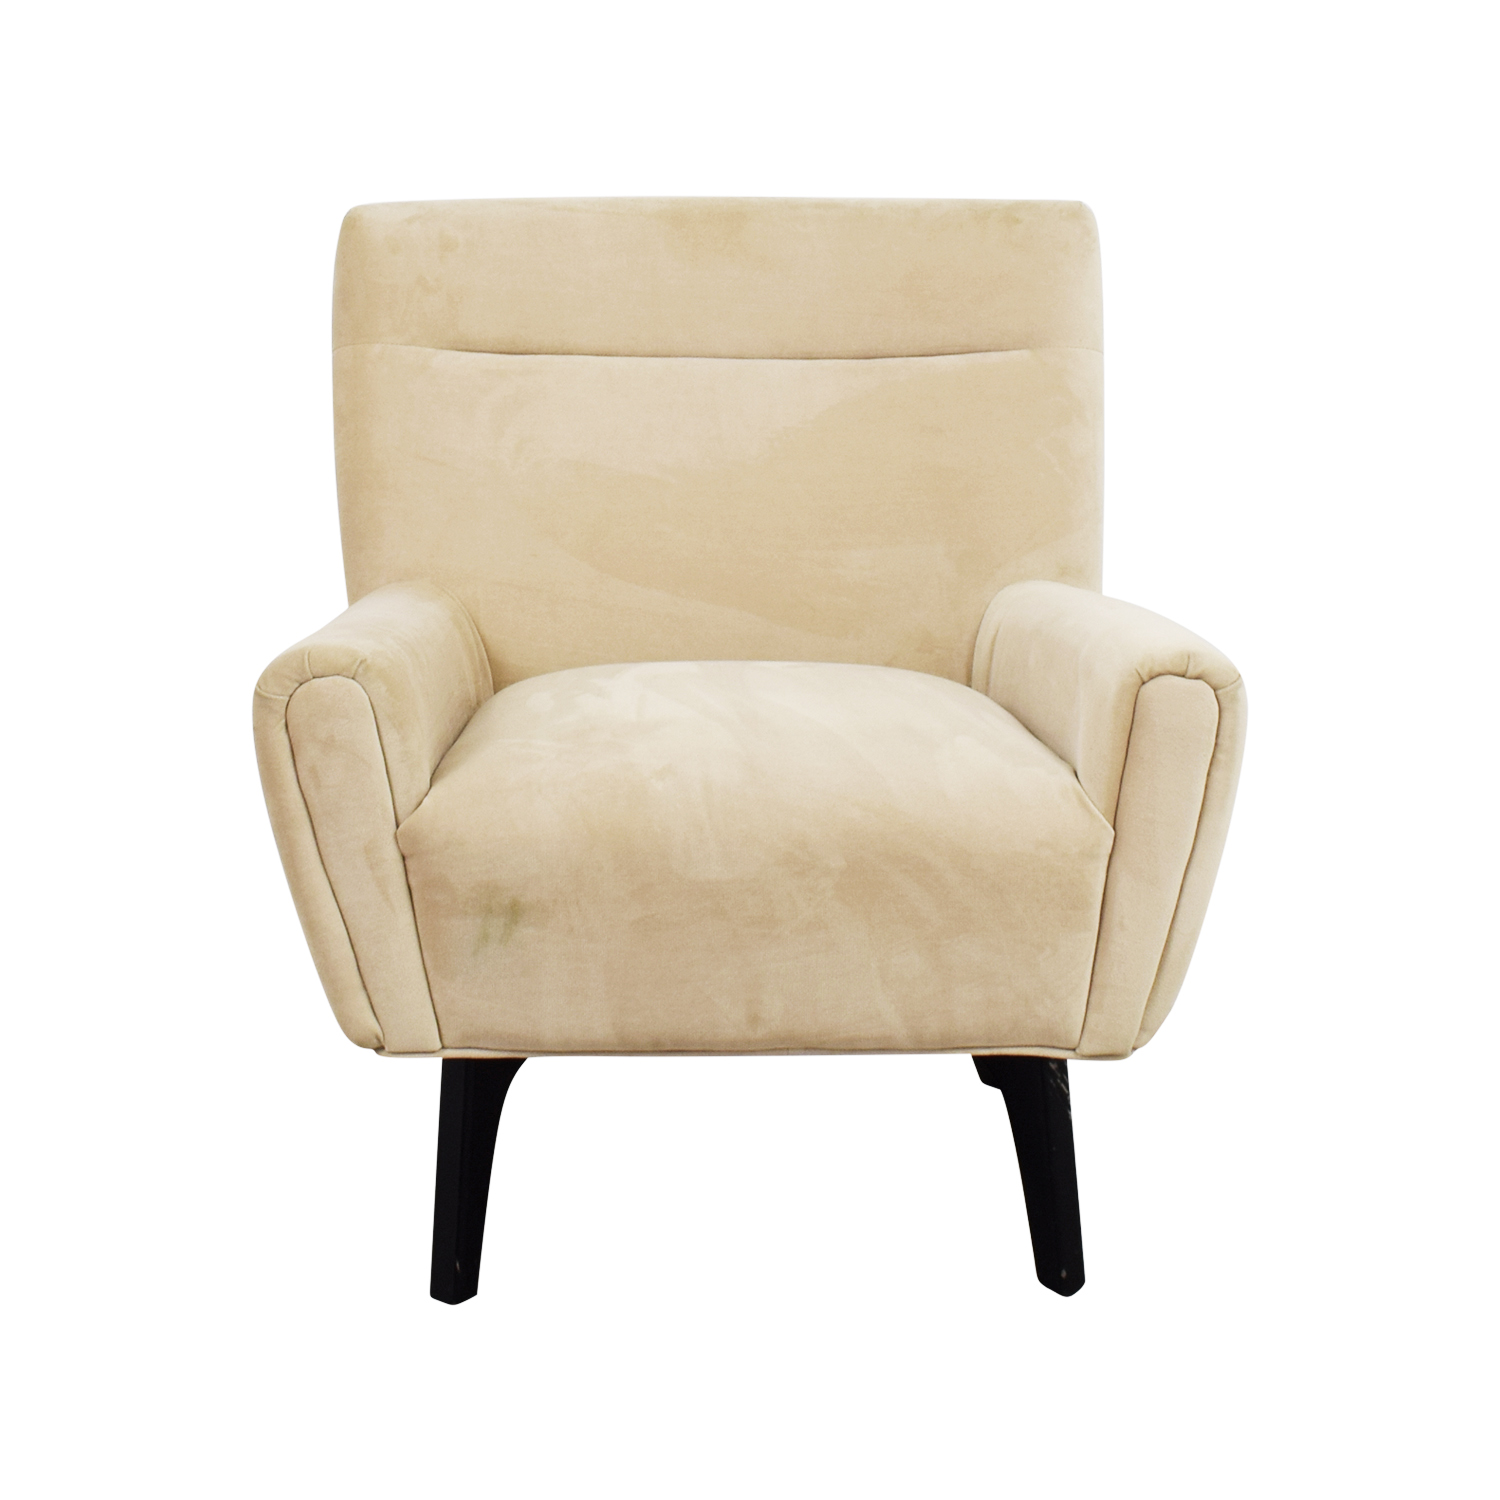 west elm everett chair modern wood dining 72 off target tufted beige side armchair chairs